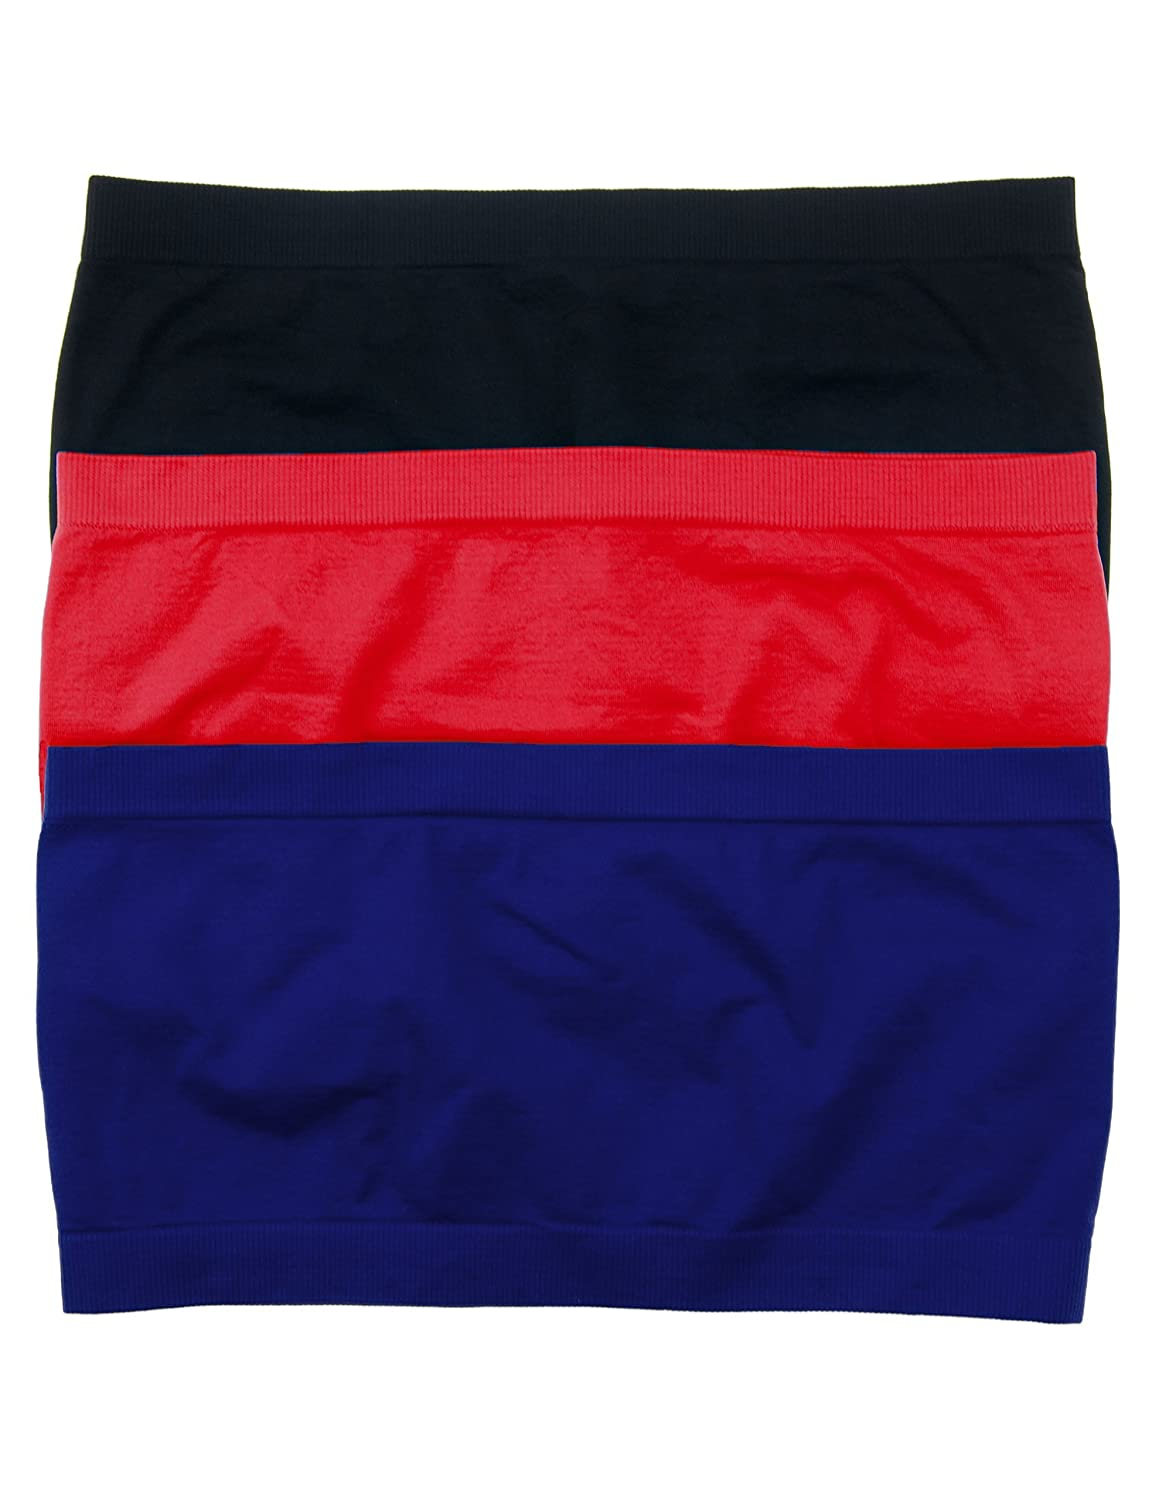 3 Pack Seamless Bandeau Top Nylon Spandex One Size,Black/Navy/Red